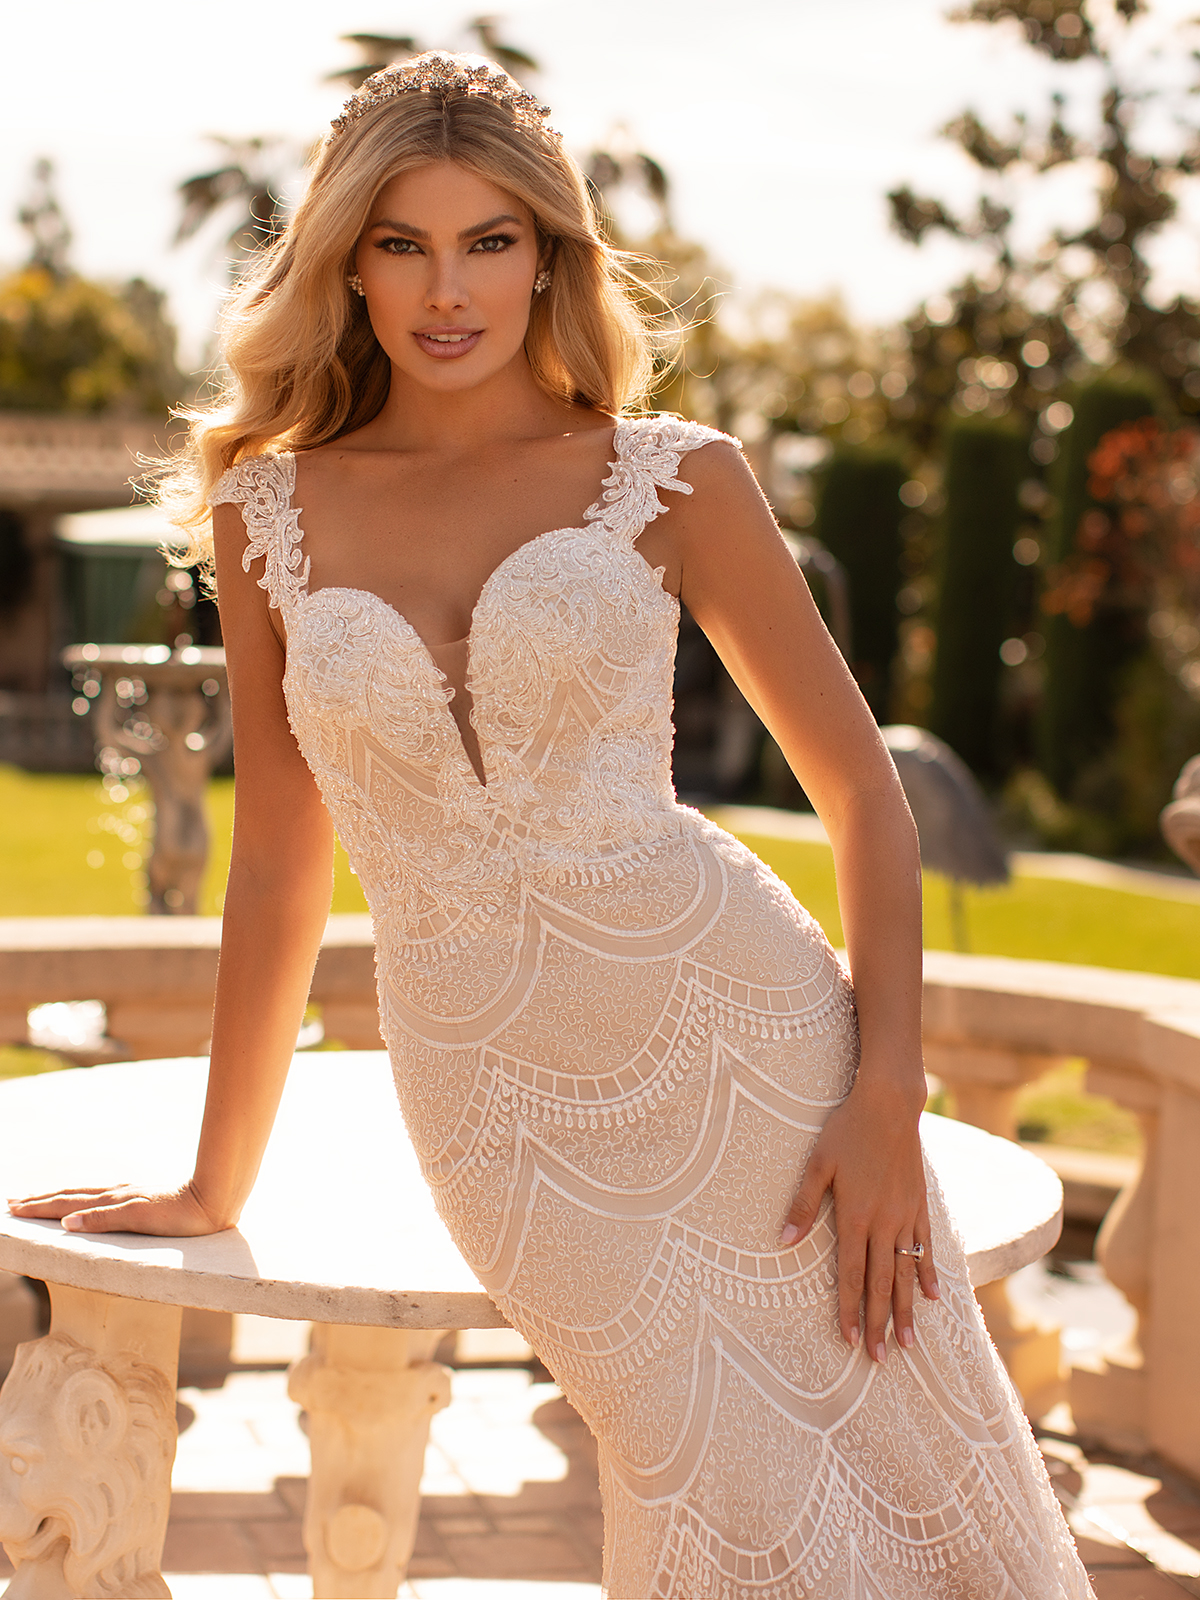 Lace Wedding Dresses in Every Silhouette – Moonlight Bridal – Val Stefani – J6798_C